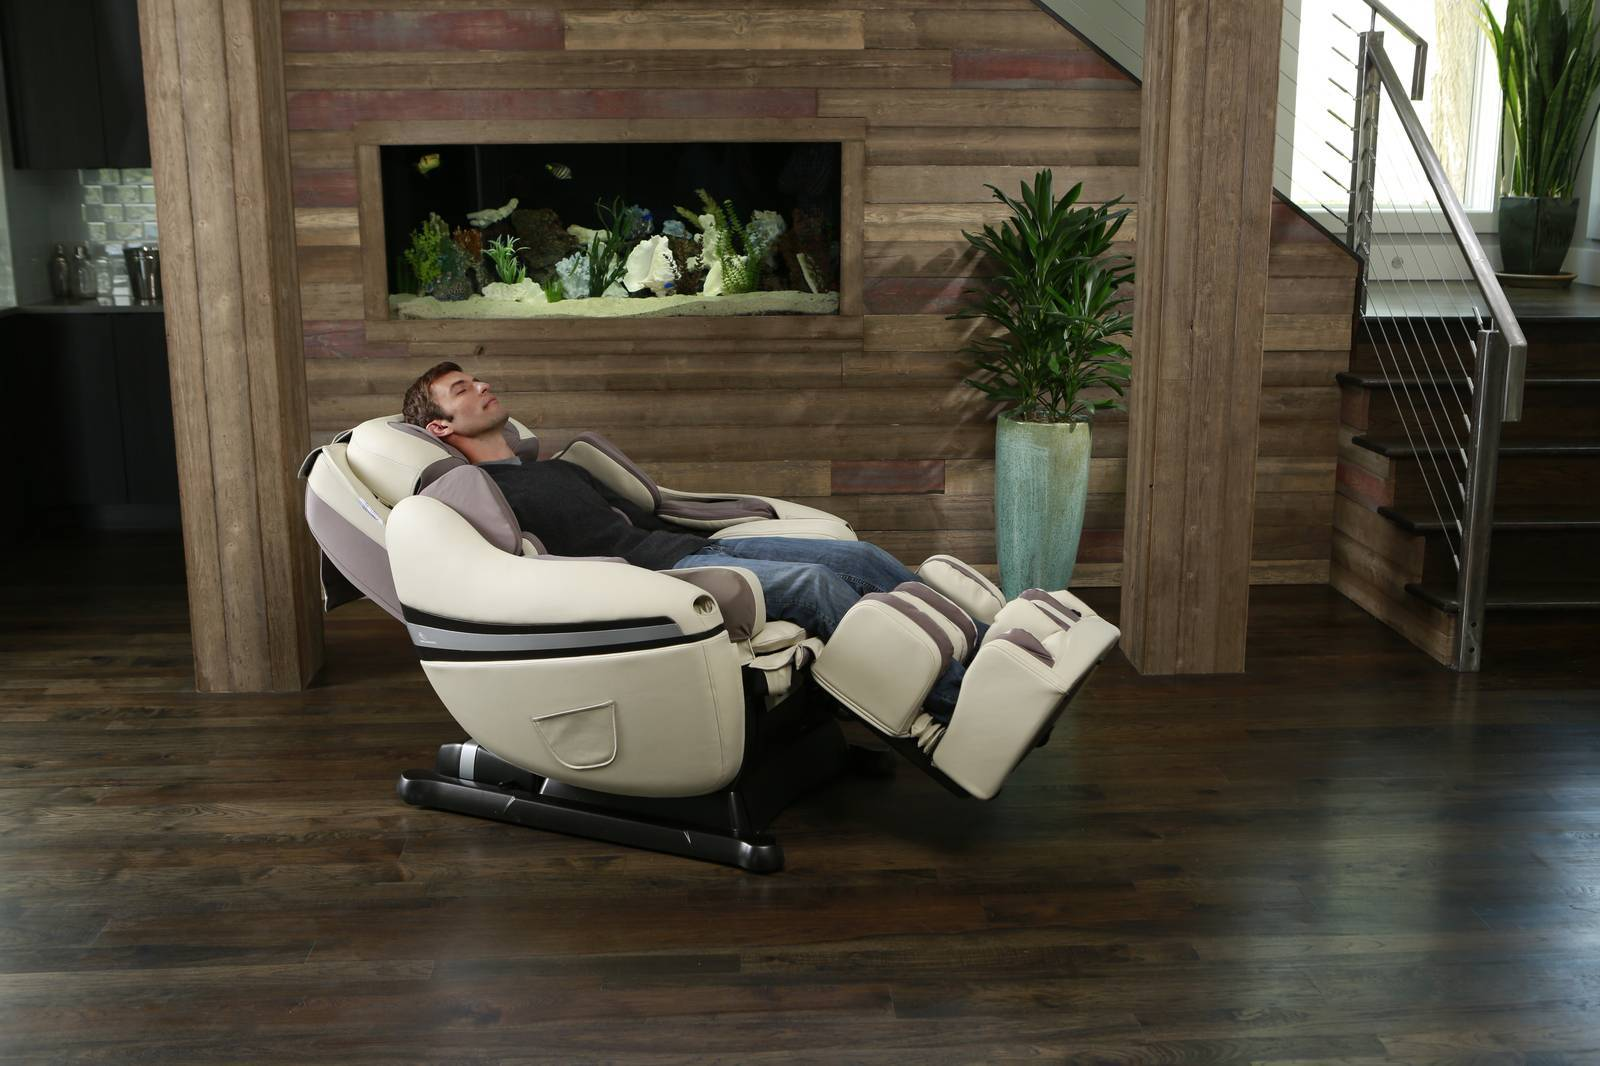 Inada Dreamwave Massage Chair Inada Dreamwave Massage Chair Inada Sogno Dreamwave Chairs